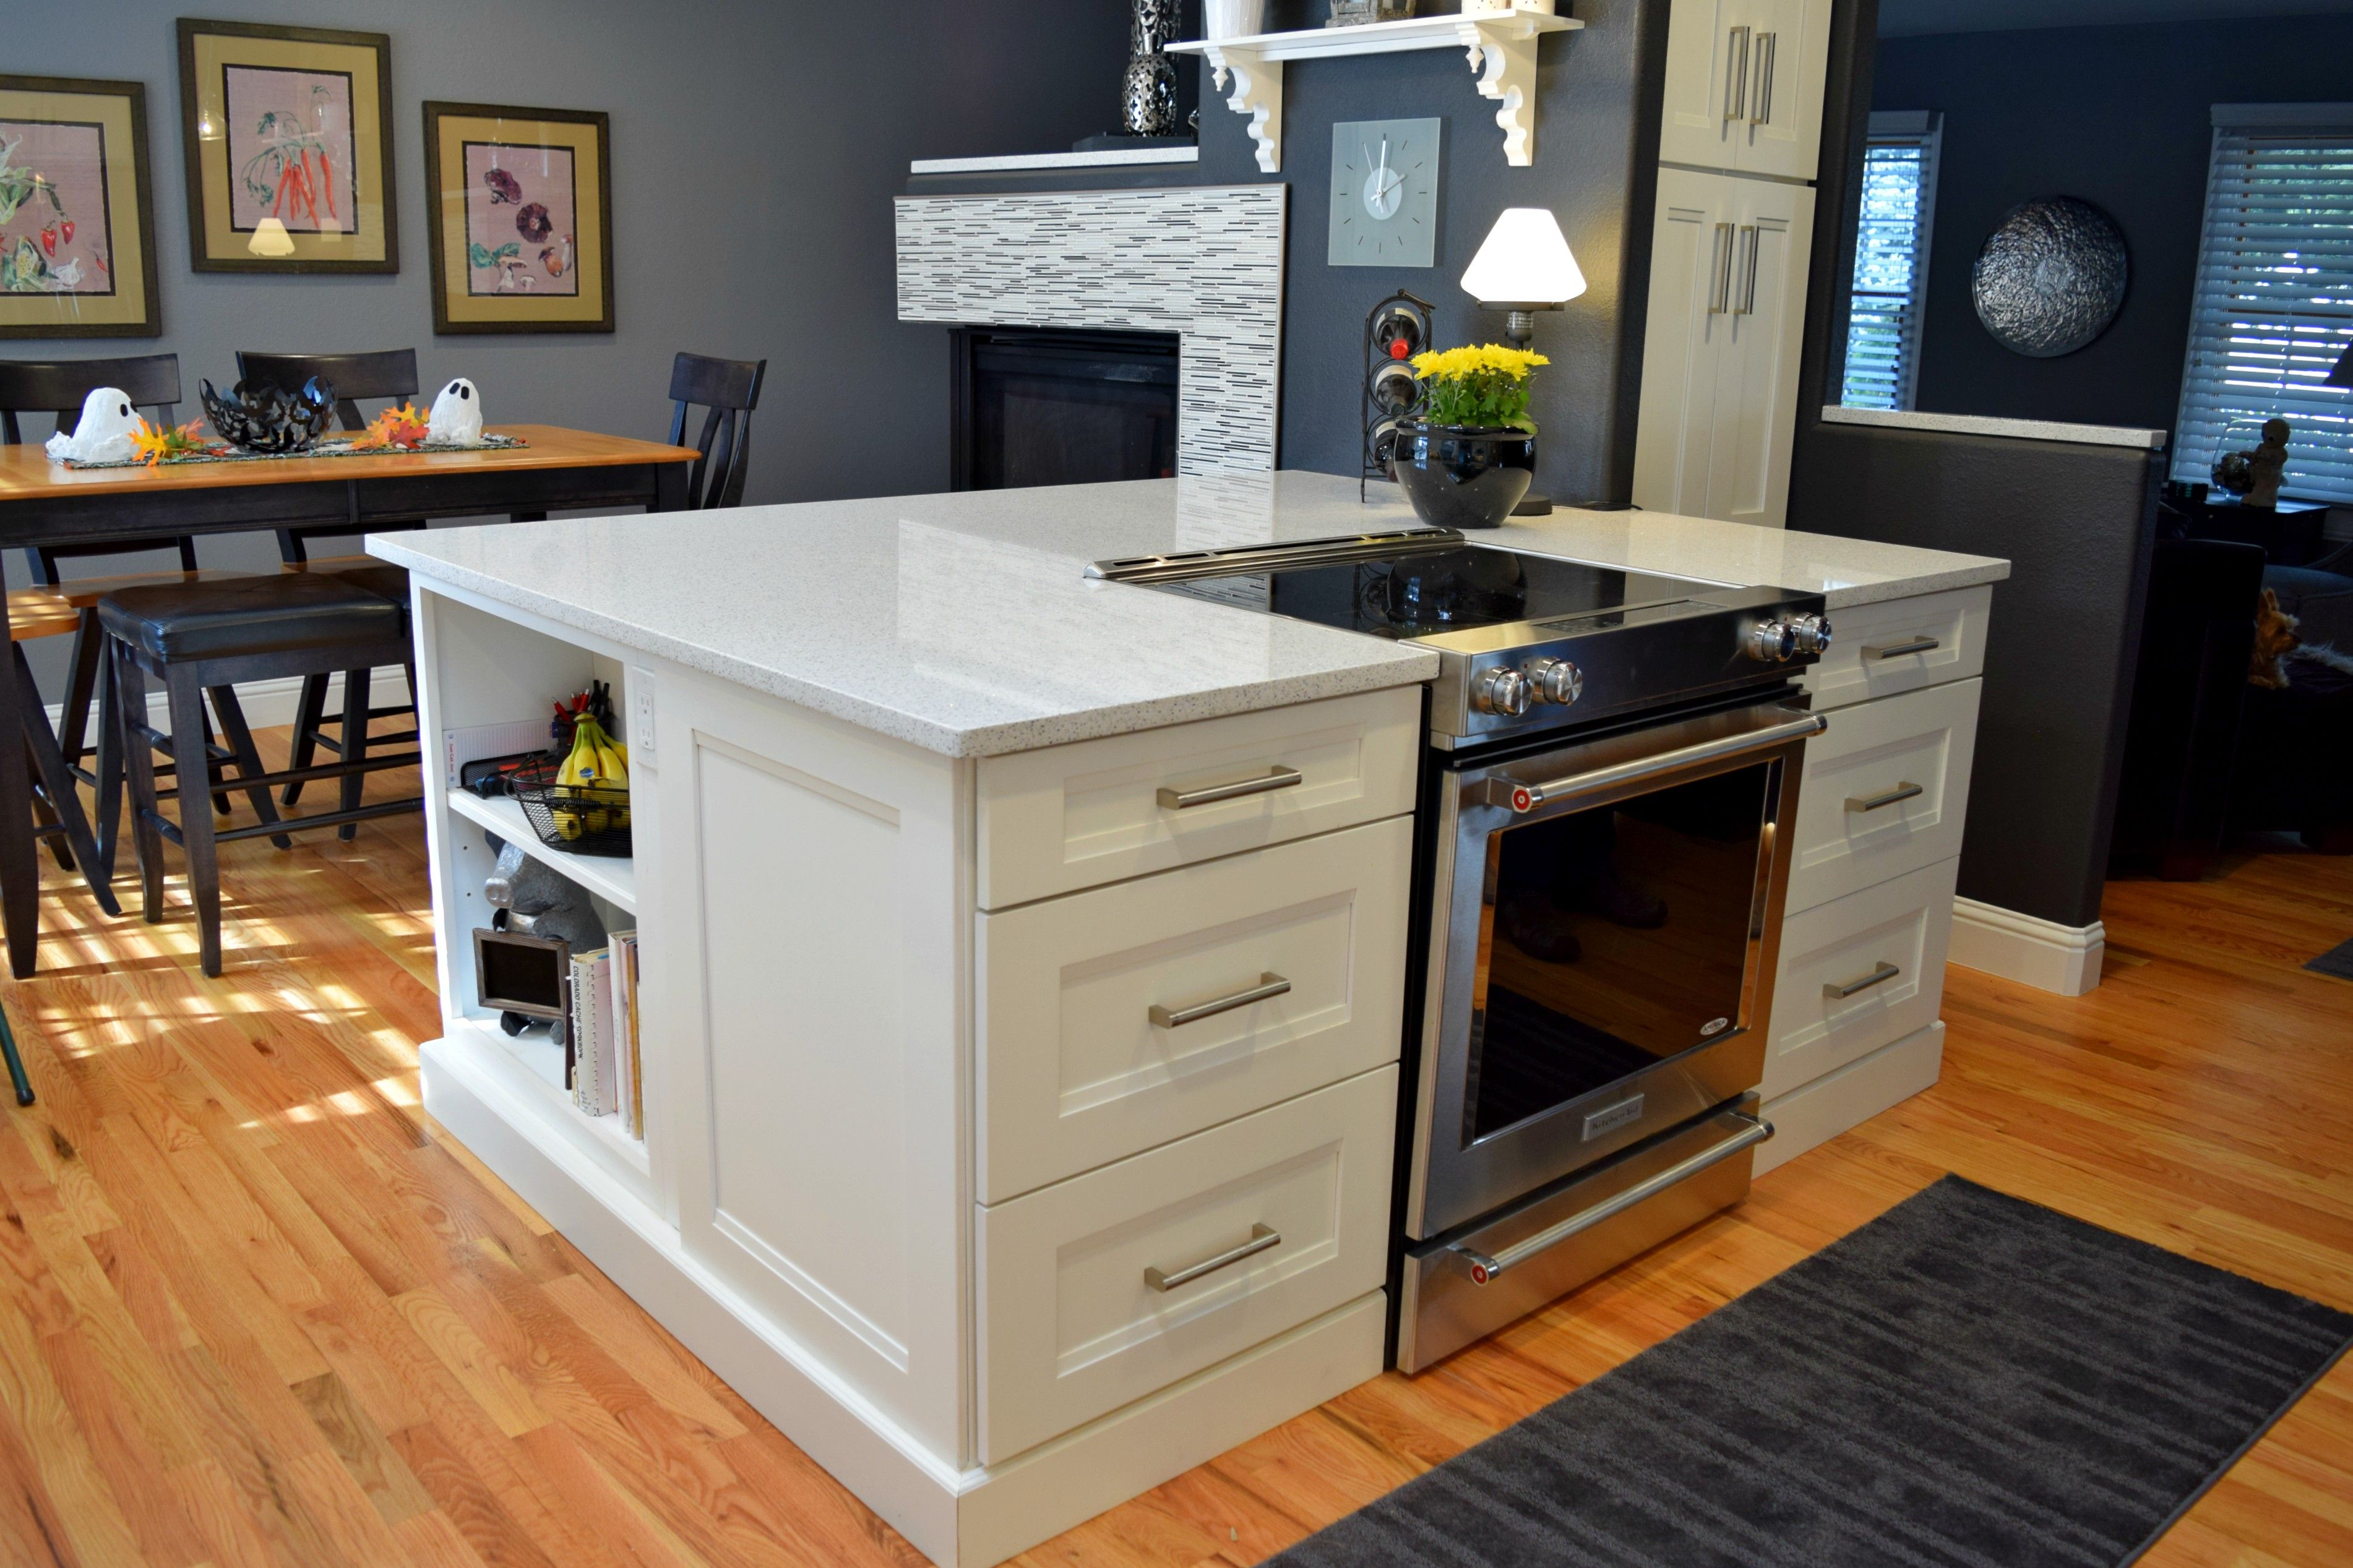 bkc kitchen and bath mid continent cabinetry pacifica door